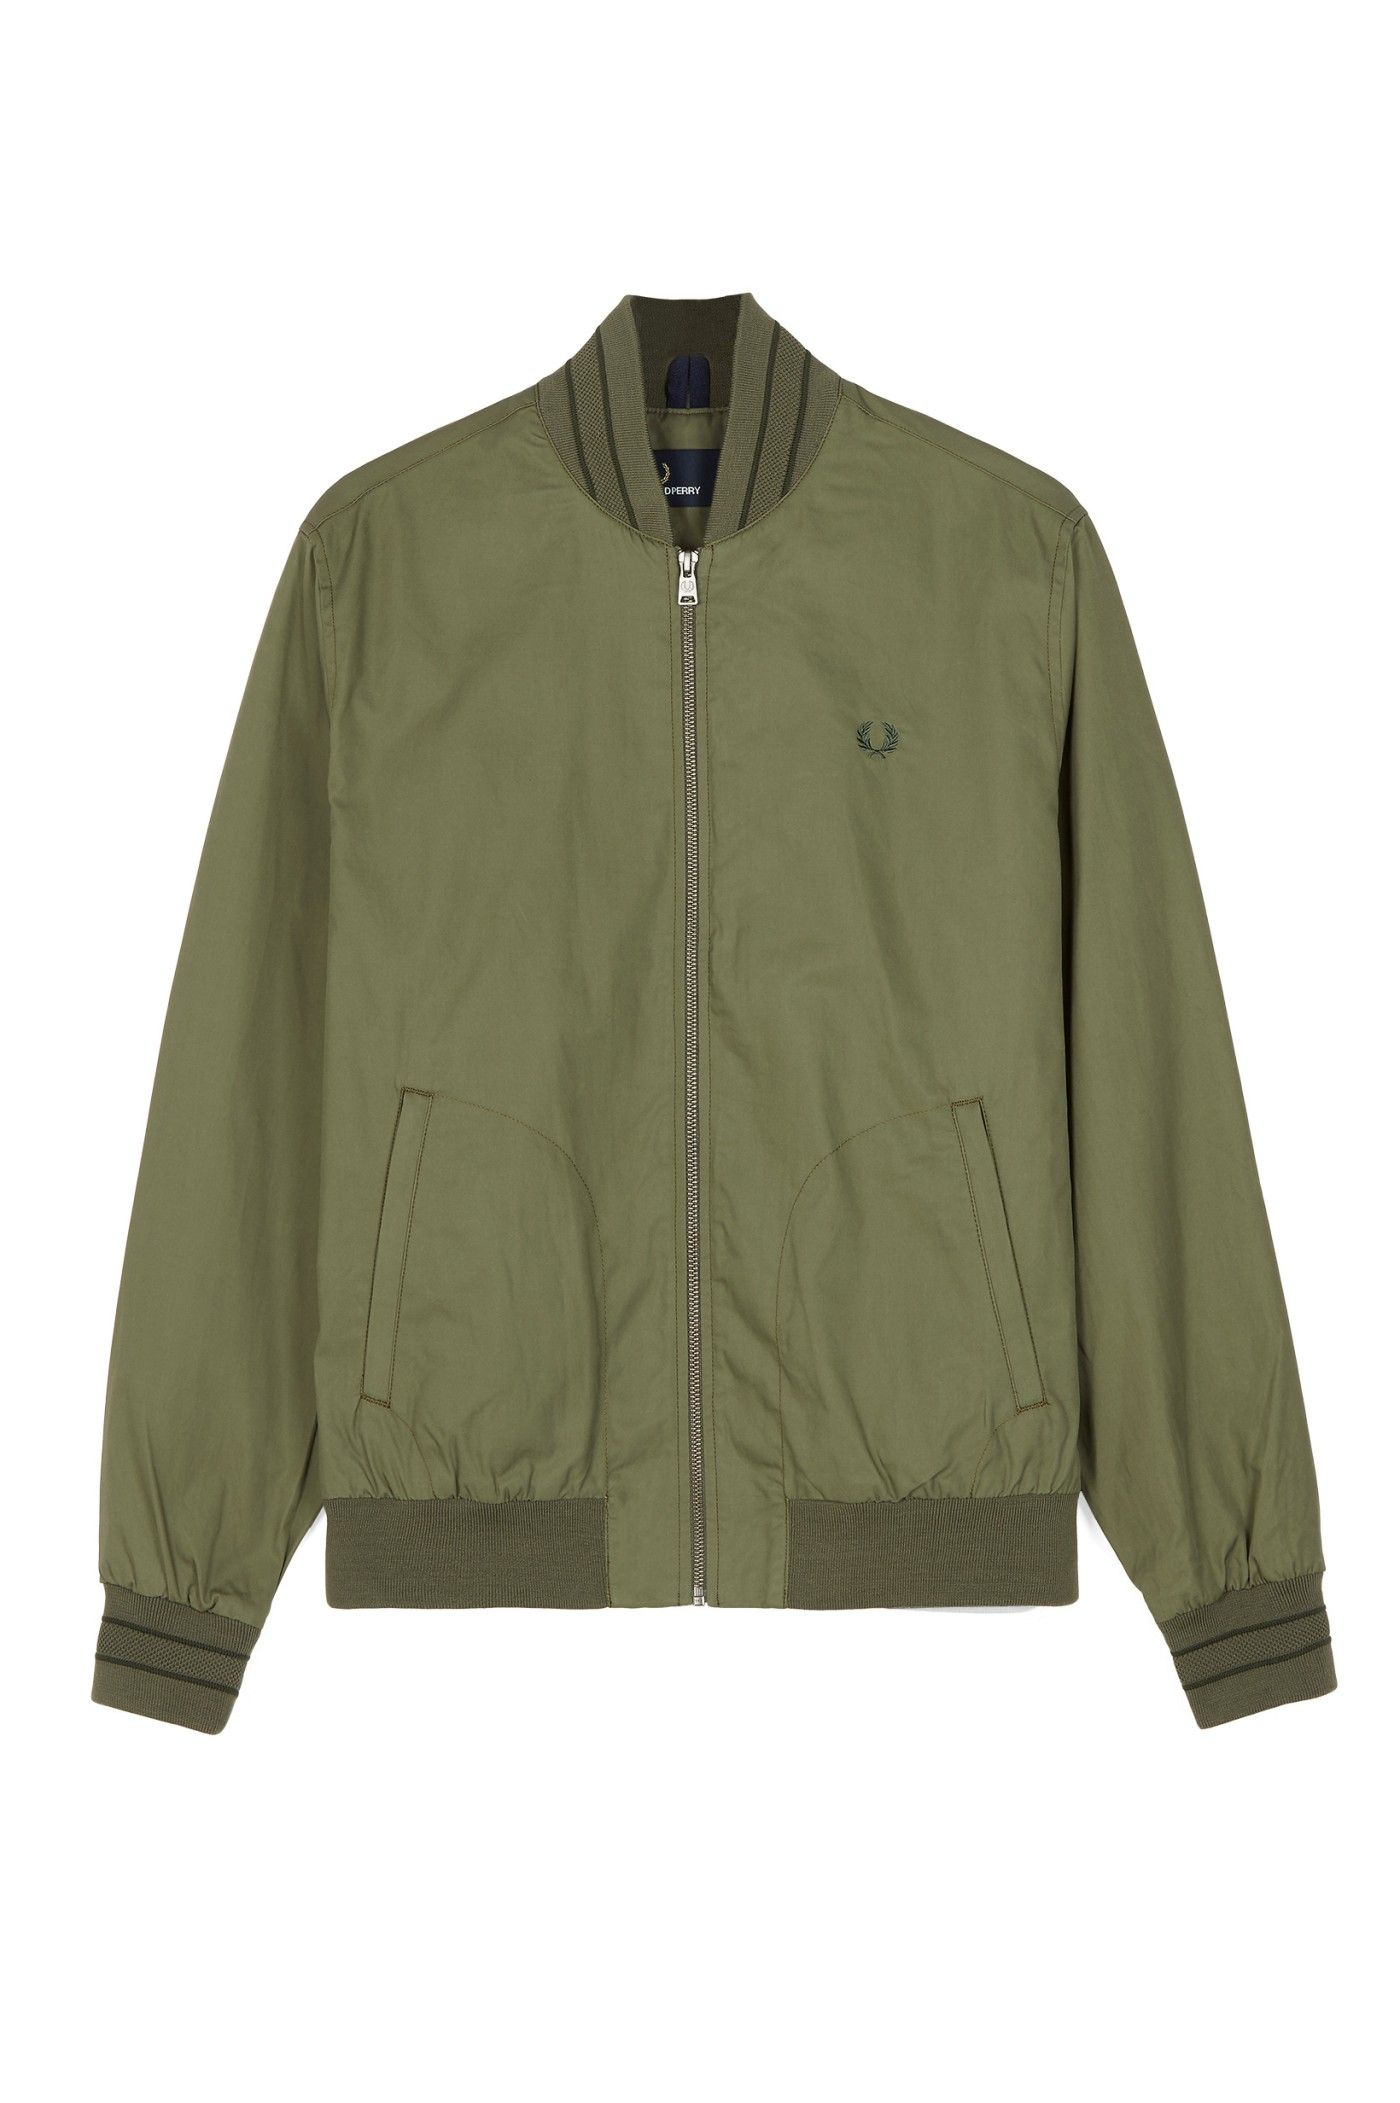 febfd6be8 Fred Perry - Tramline Bomber Jacket Olive Drab